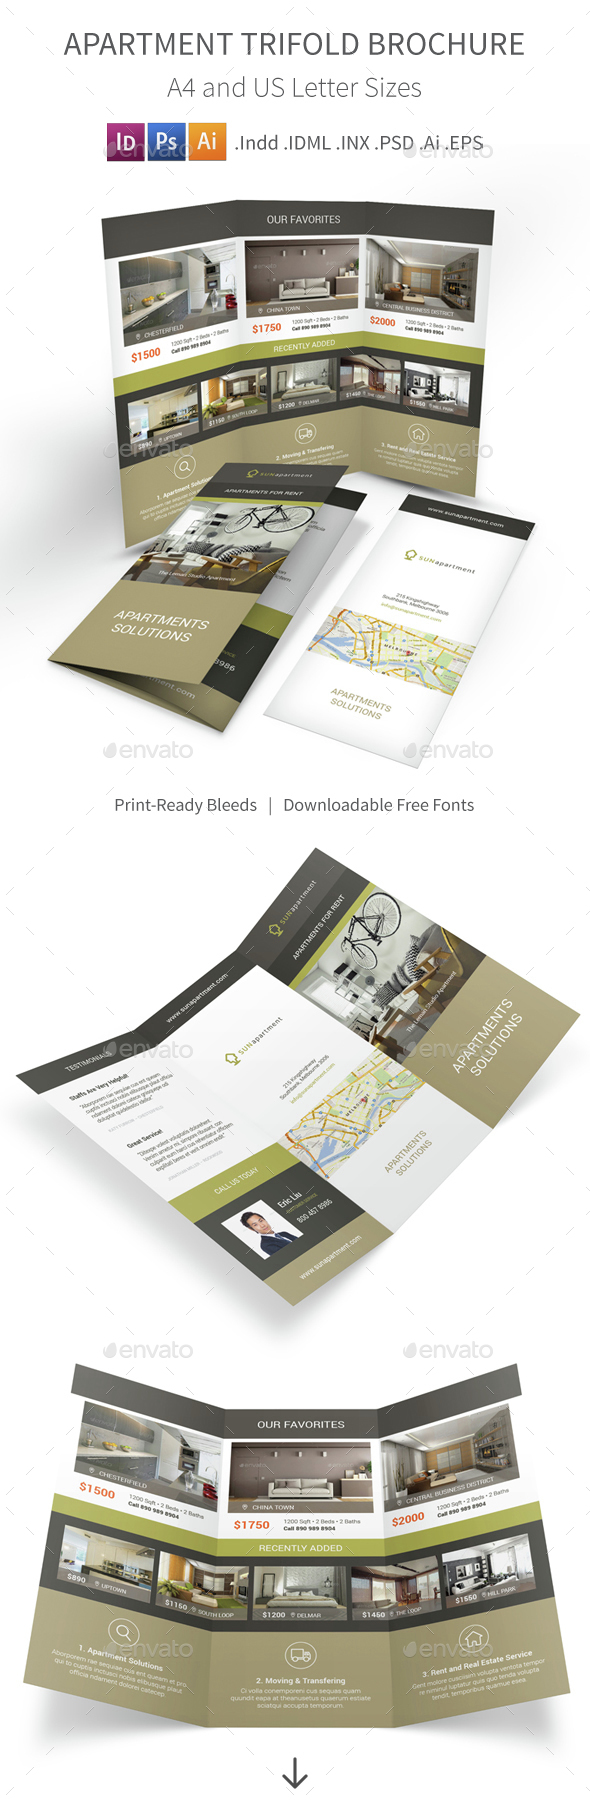 Apartment For Rent Trifold Brochure 2 - Informational Brochures